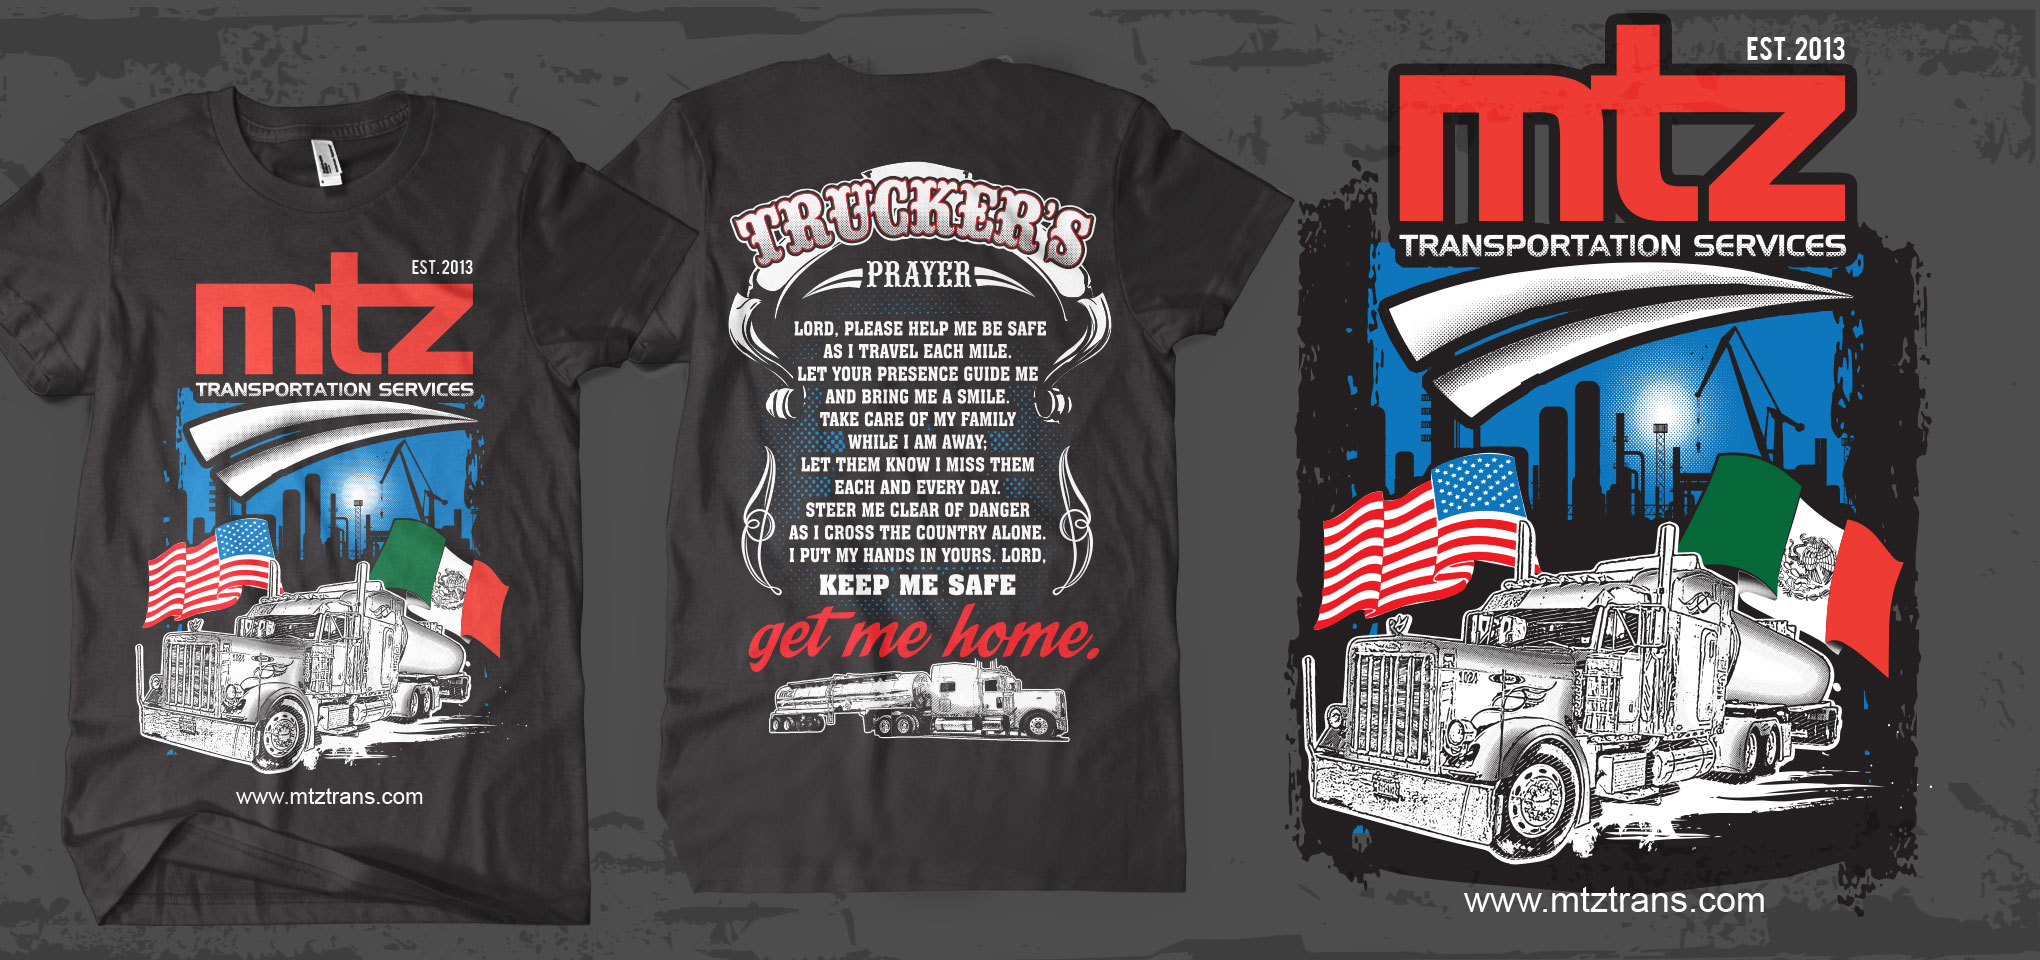 MTZ Transportation Services T Shirts - Transportation